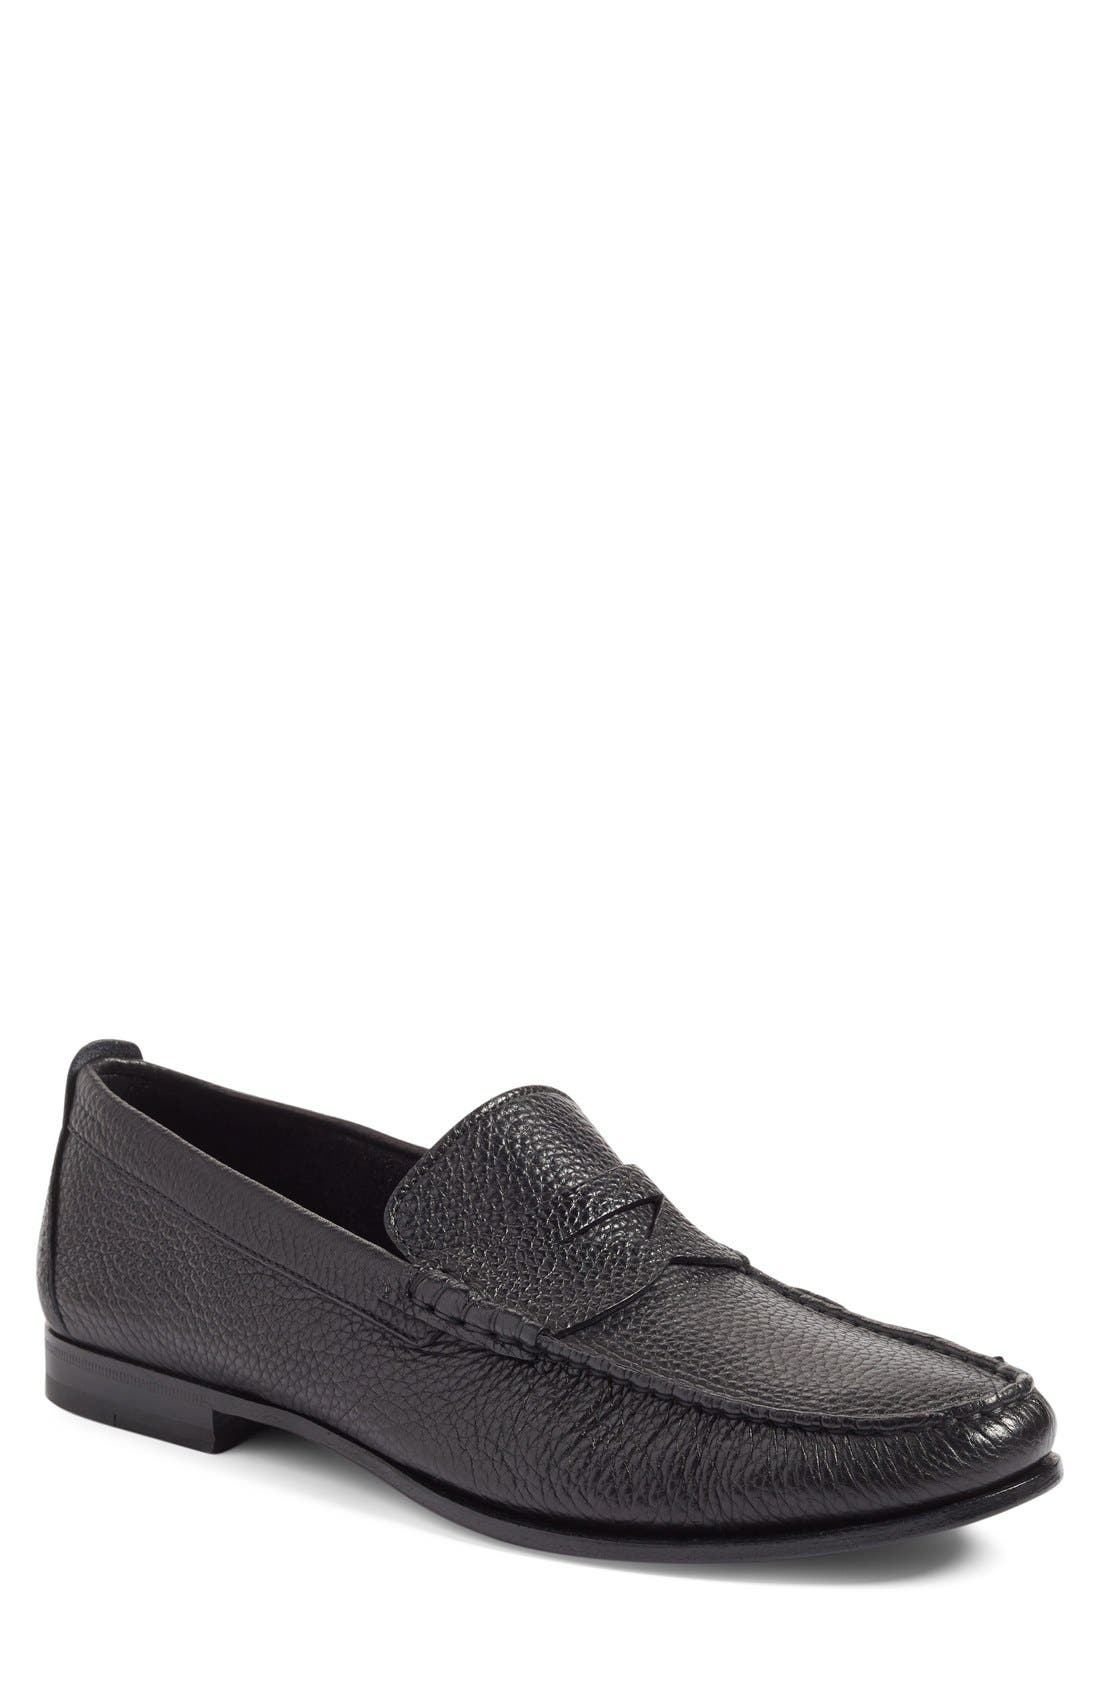 'Carmel' Penny Loafer,                         Main,                         color, 001